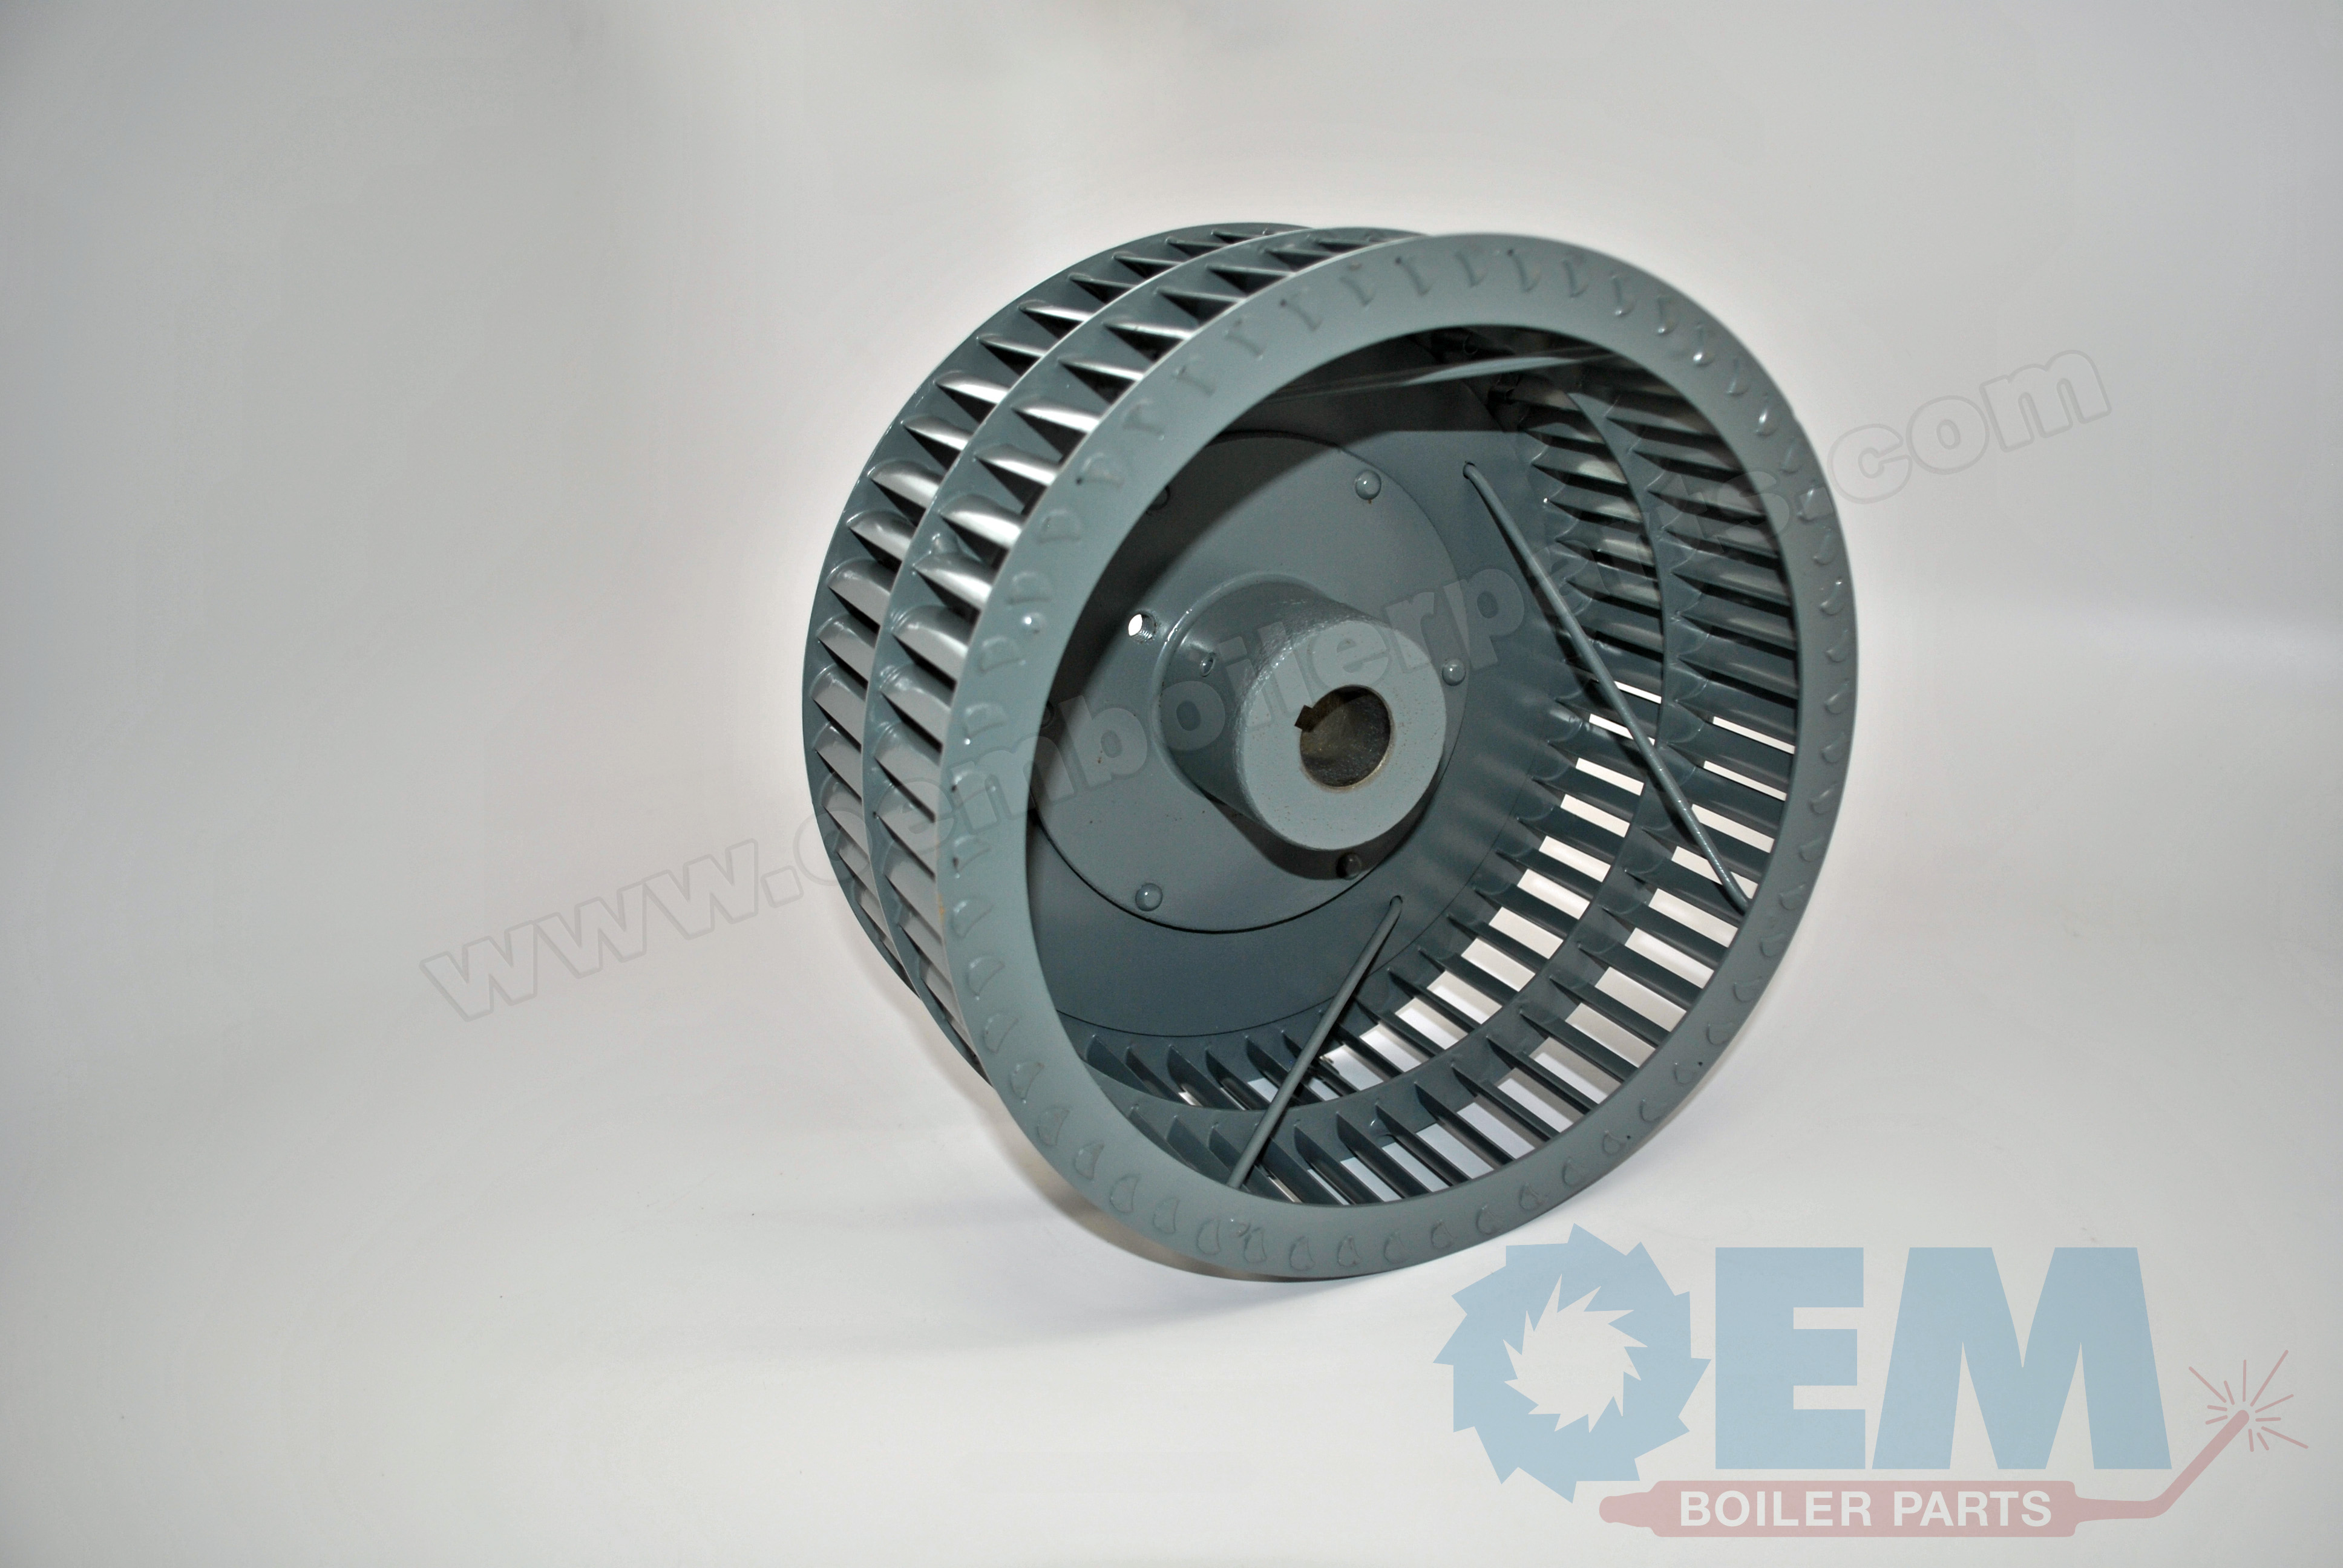 Kewanee Er Wheel10 5 8 X 4 1 2 Bore Clic Ii 200 250 Hppart Number 266243contact Us For Price Availability